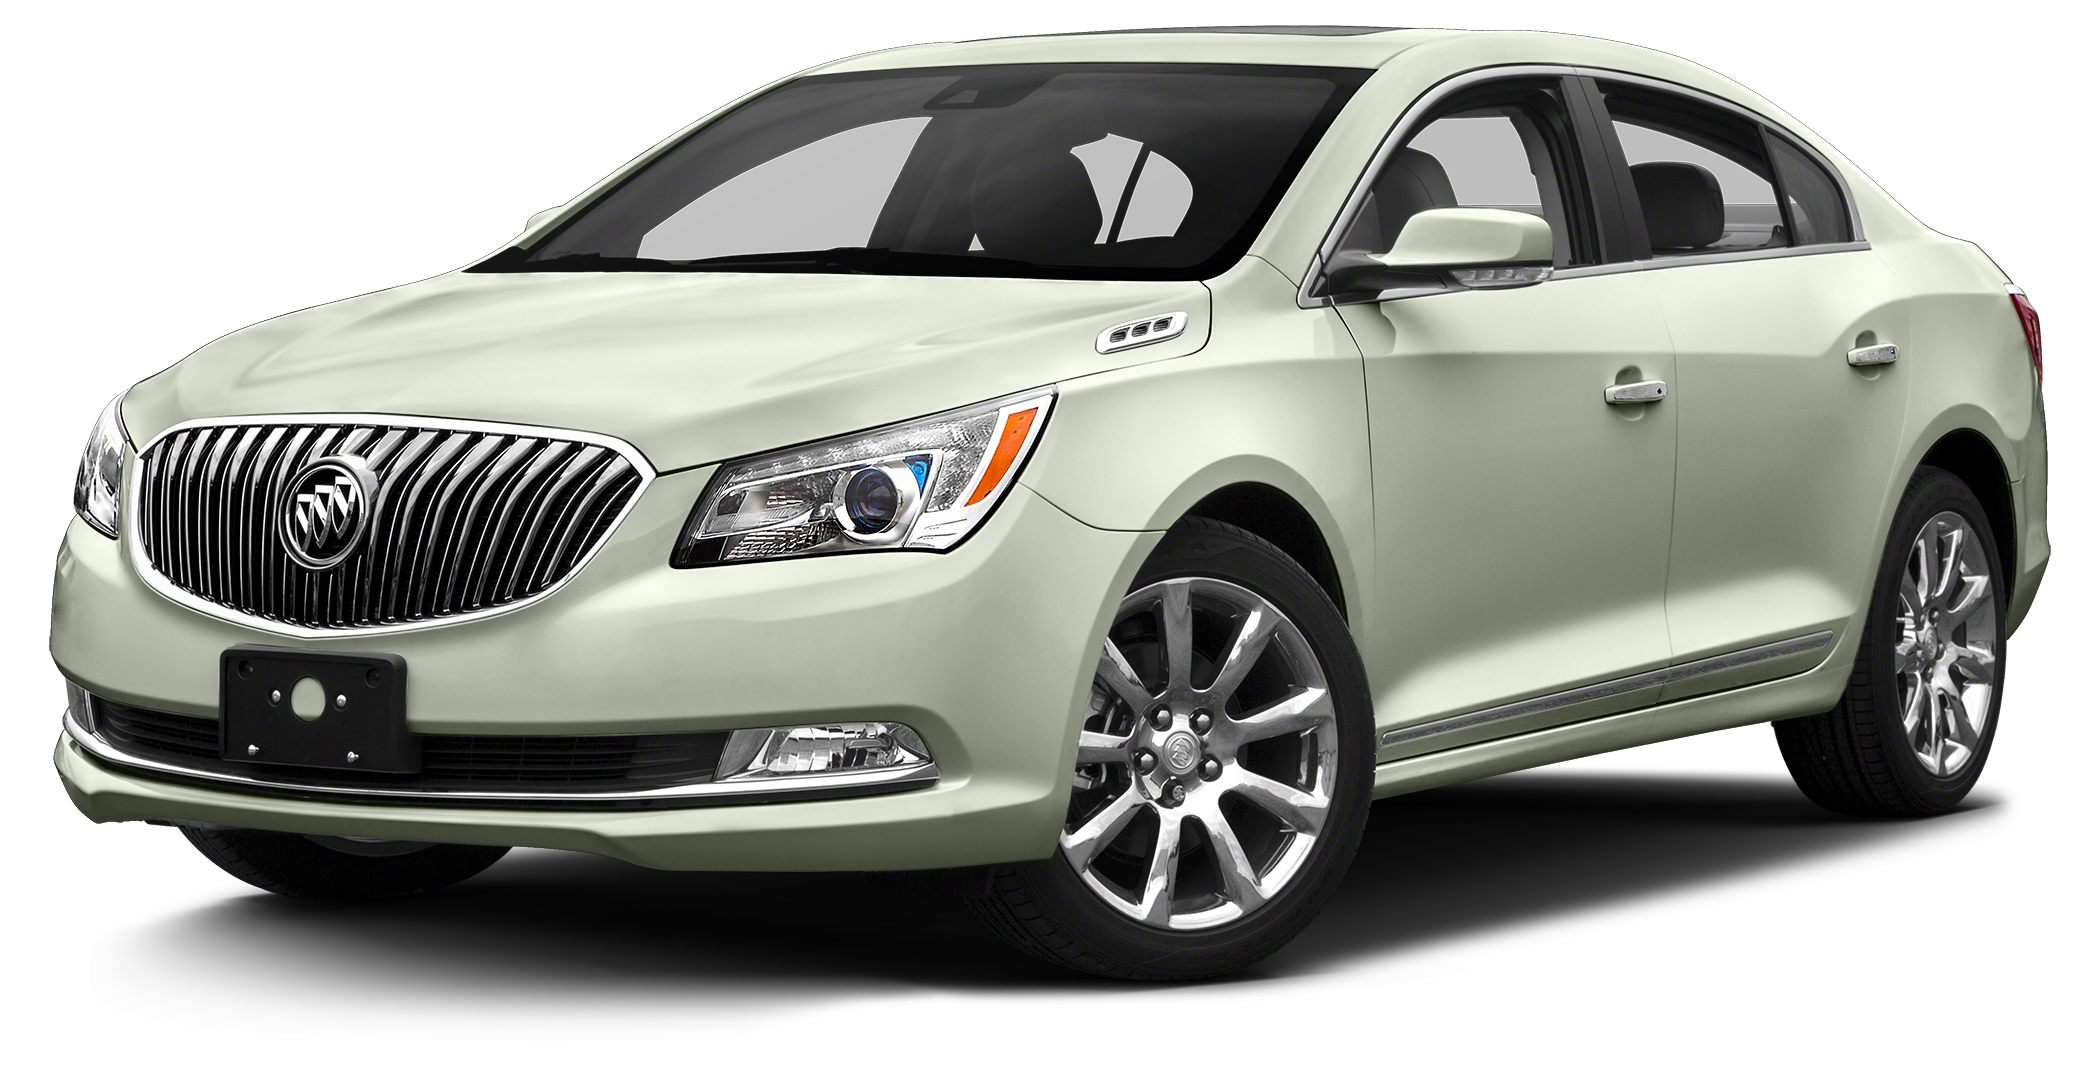 2016 Buick LaCrosse Leather Dont let inclement weather put a damper on driving your 2016 Buick La